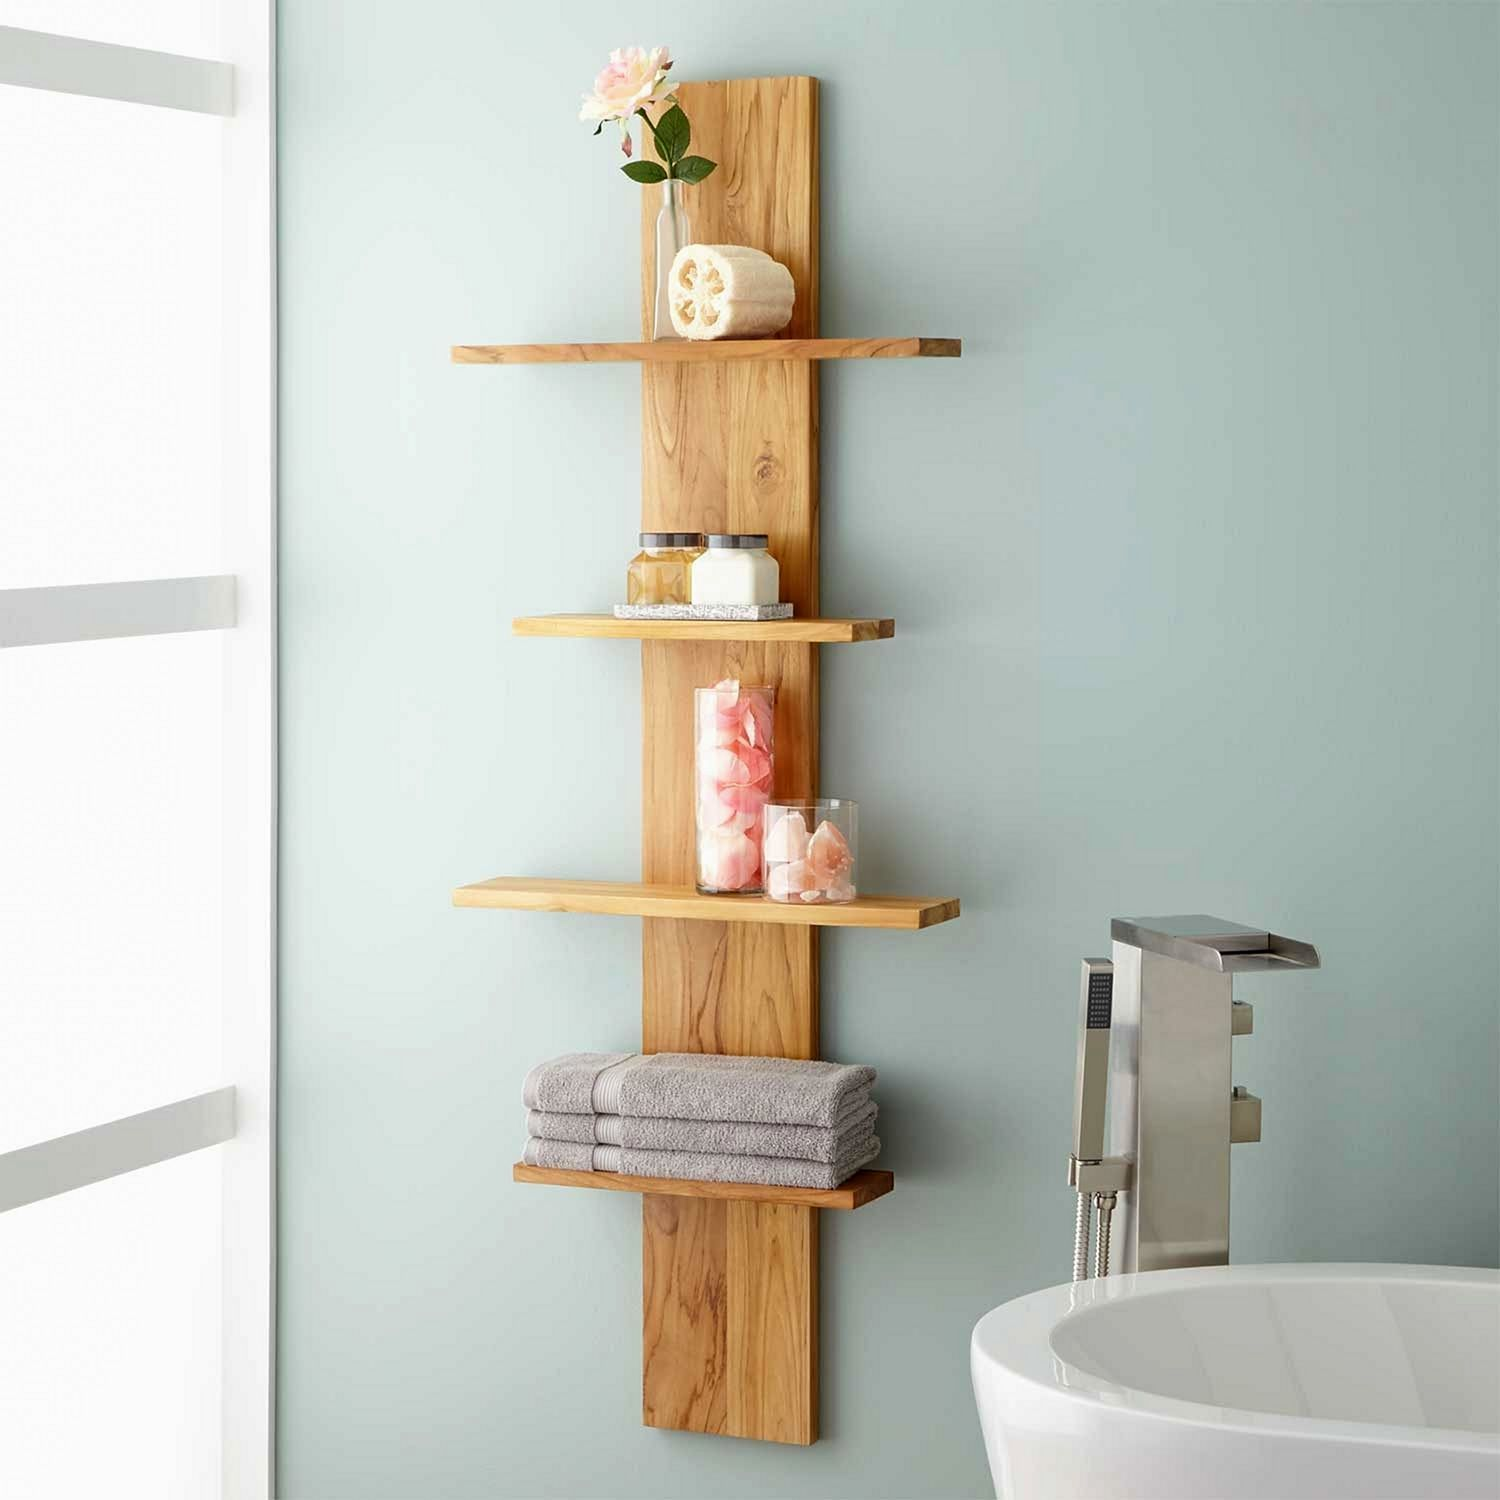 82 Beautiful Bathroom Shelves Decorating Ideas 24 Casitaandmanor Bathroom Shelves Decorating In 2020 Rustic Shelves Home Decor Decor